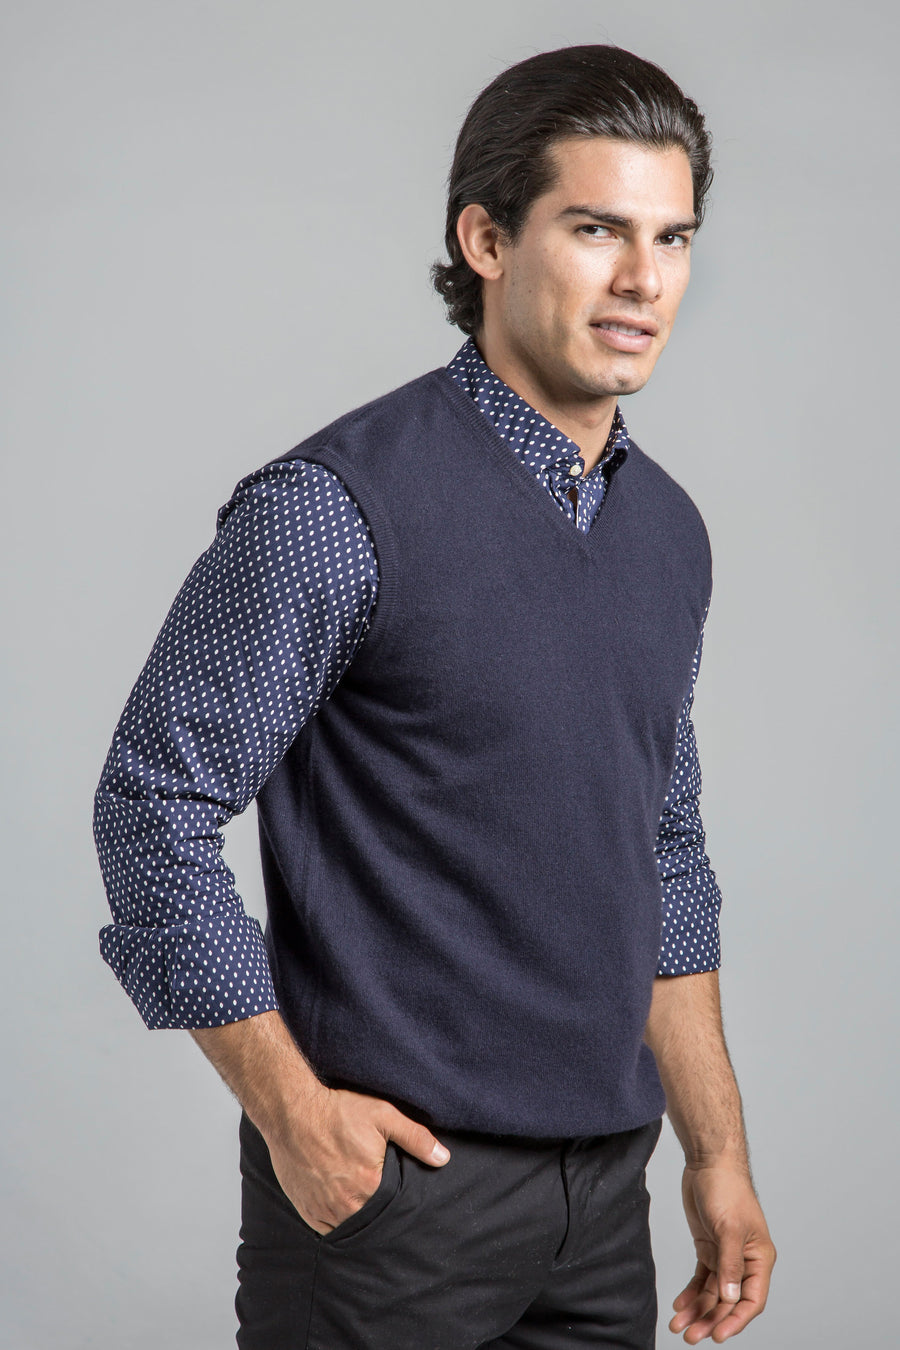 pine cashmere mens classic 100% pure cashmere v-neck sweater vest in navy